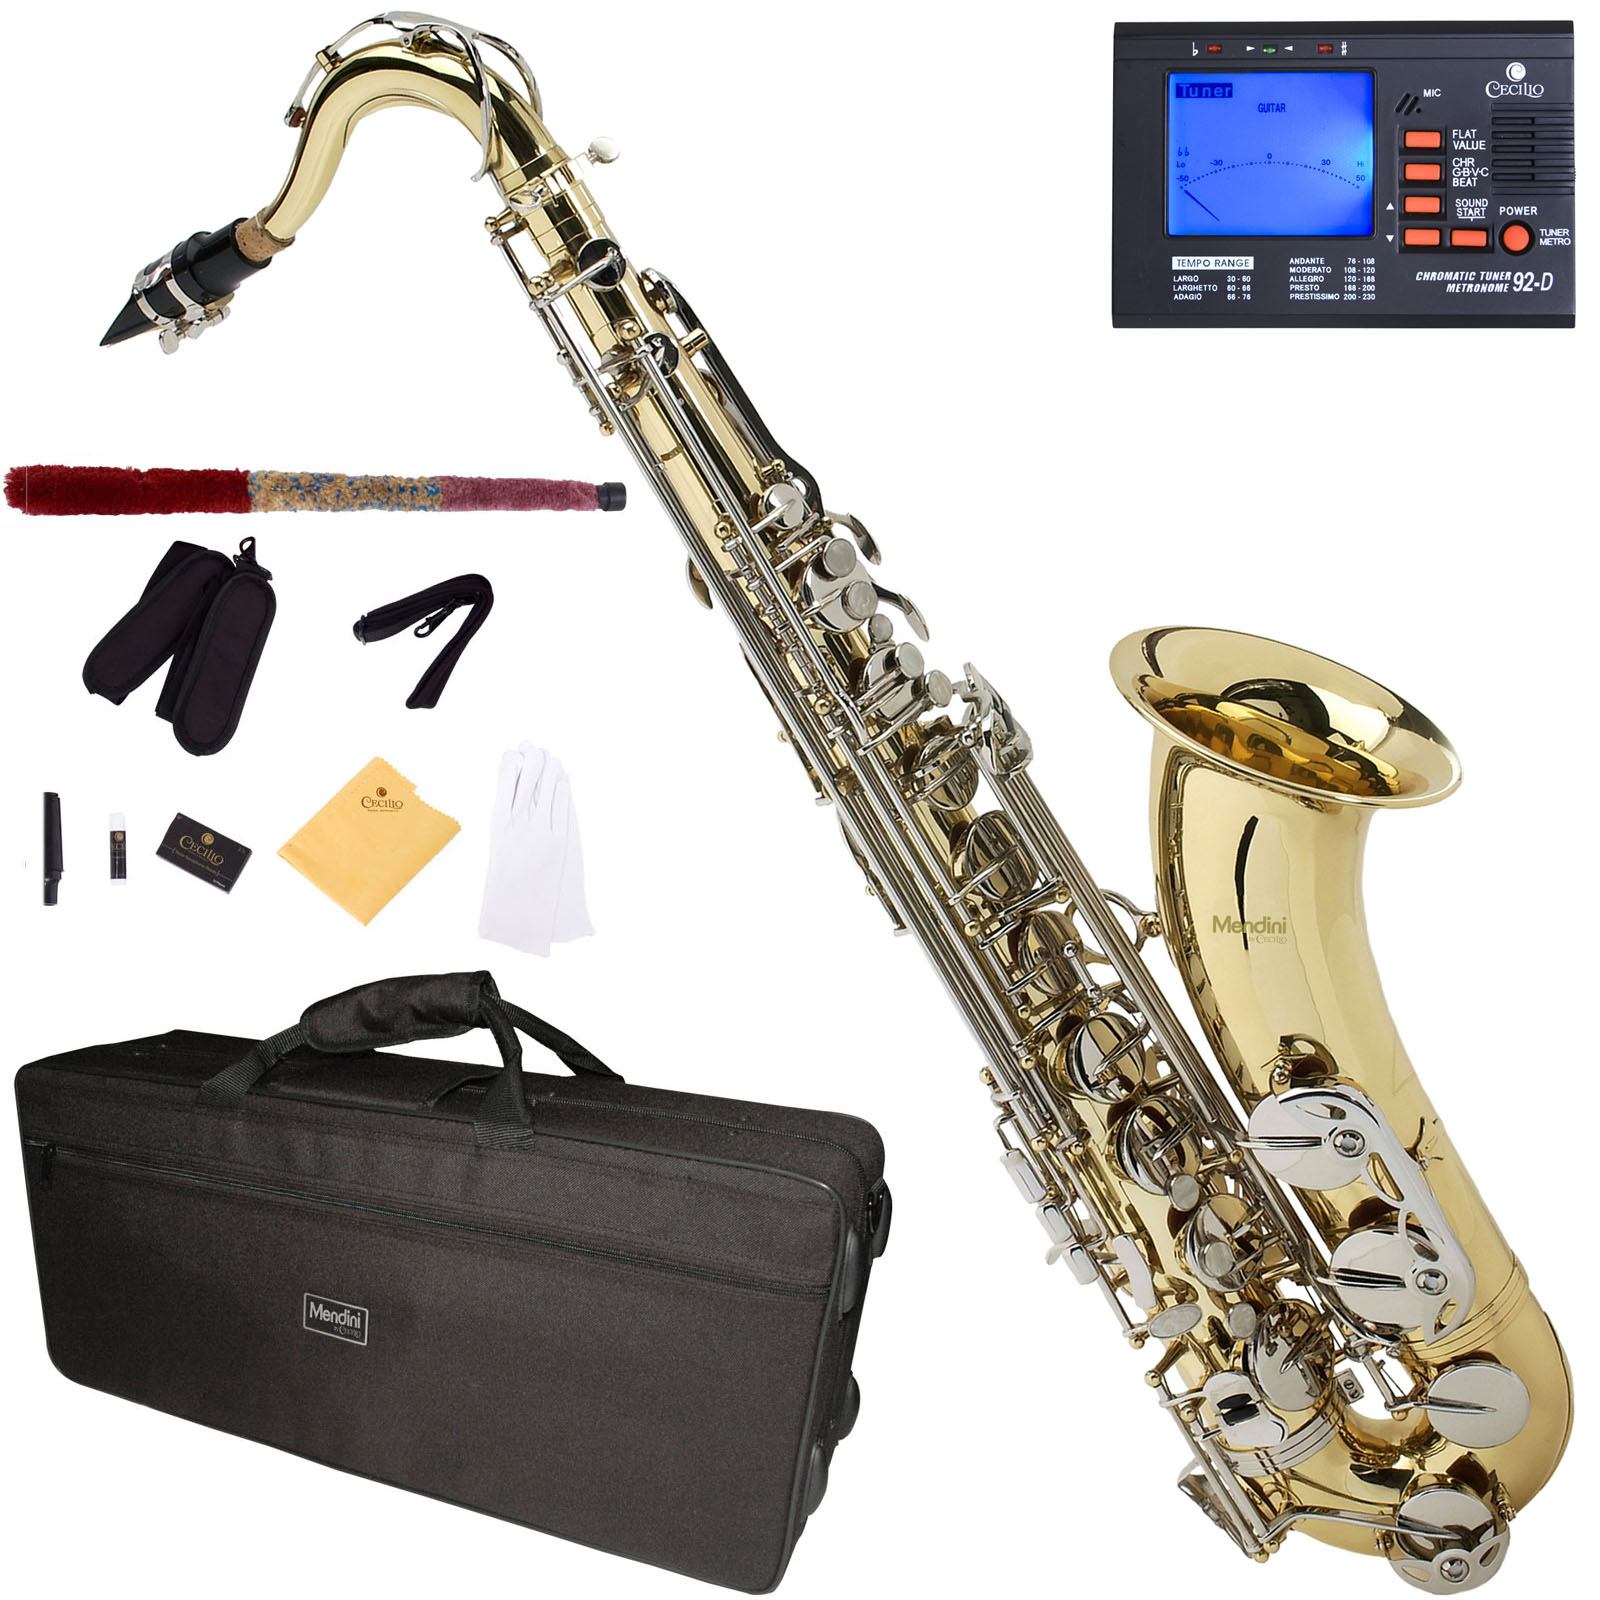 Mendini by Cecilio Bb Tenor Saxophone with Tuner, 10 Reeds, Mouthpiece and Case, MTS-LN Gold Lacquer with Nickel Keys